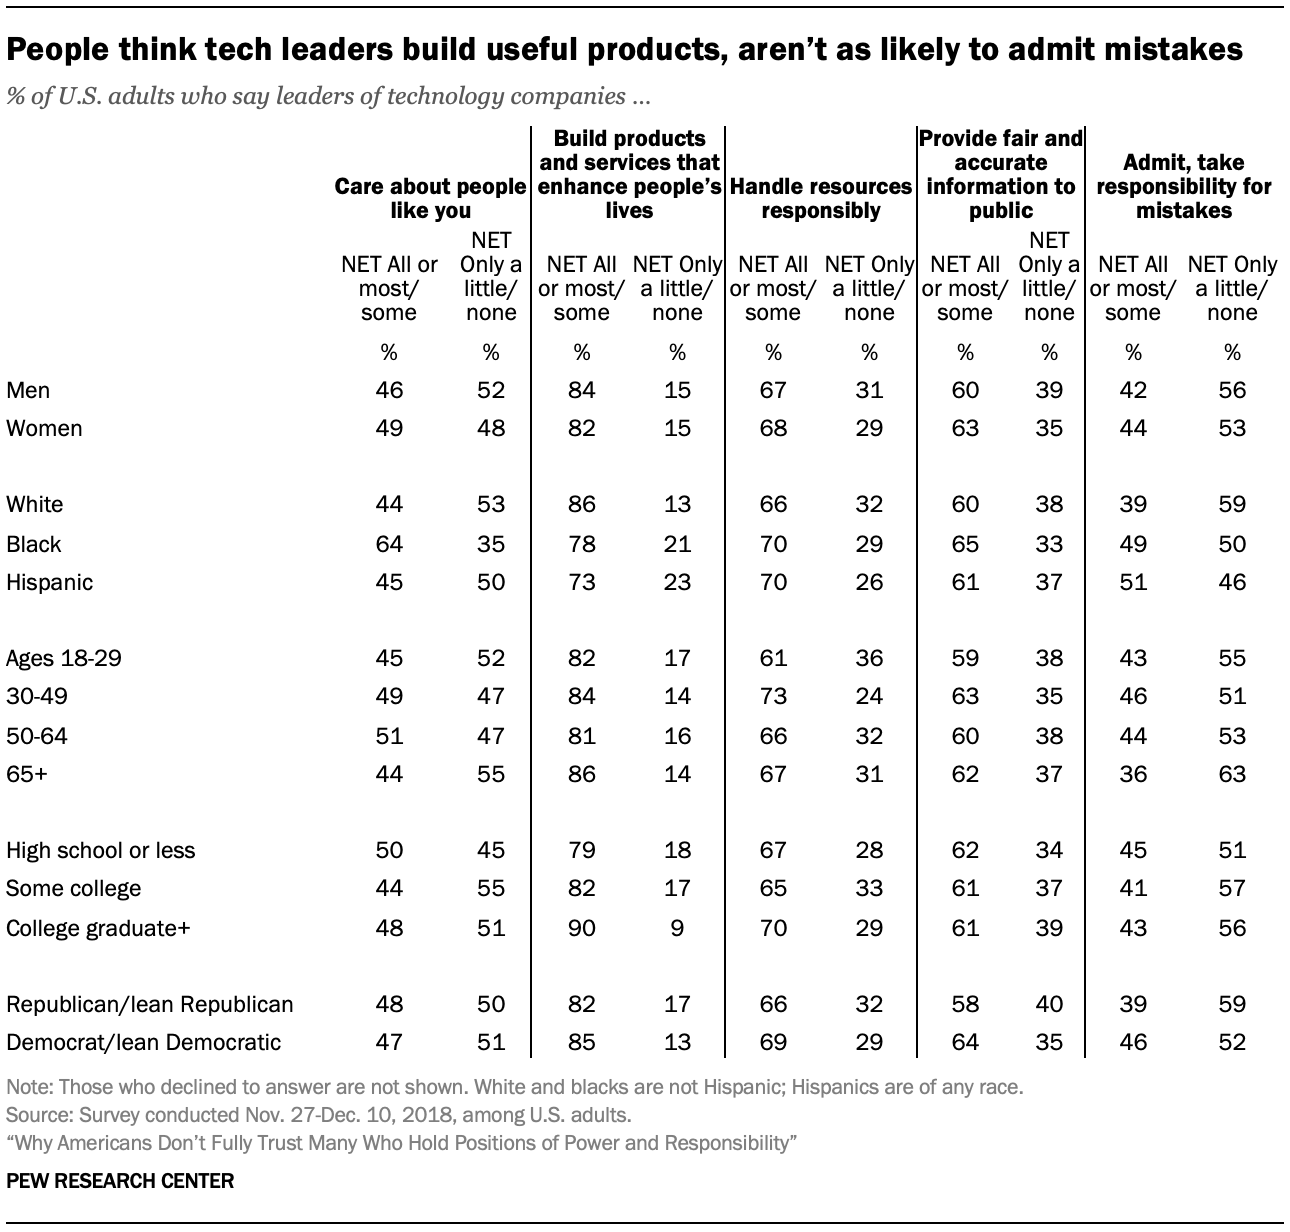 People think tech leaders build useful products, aren't as likely to admit mistakes